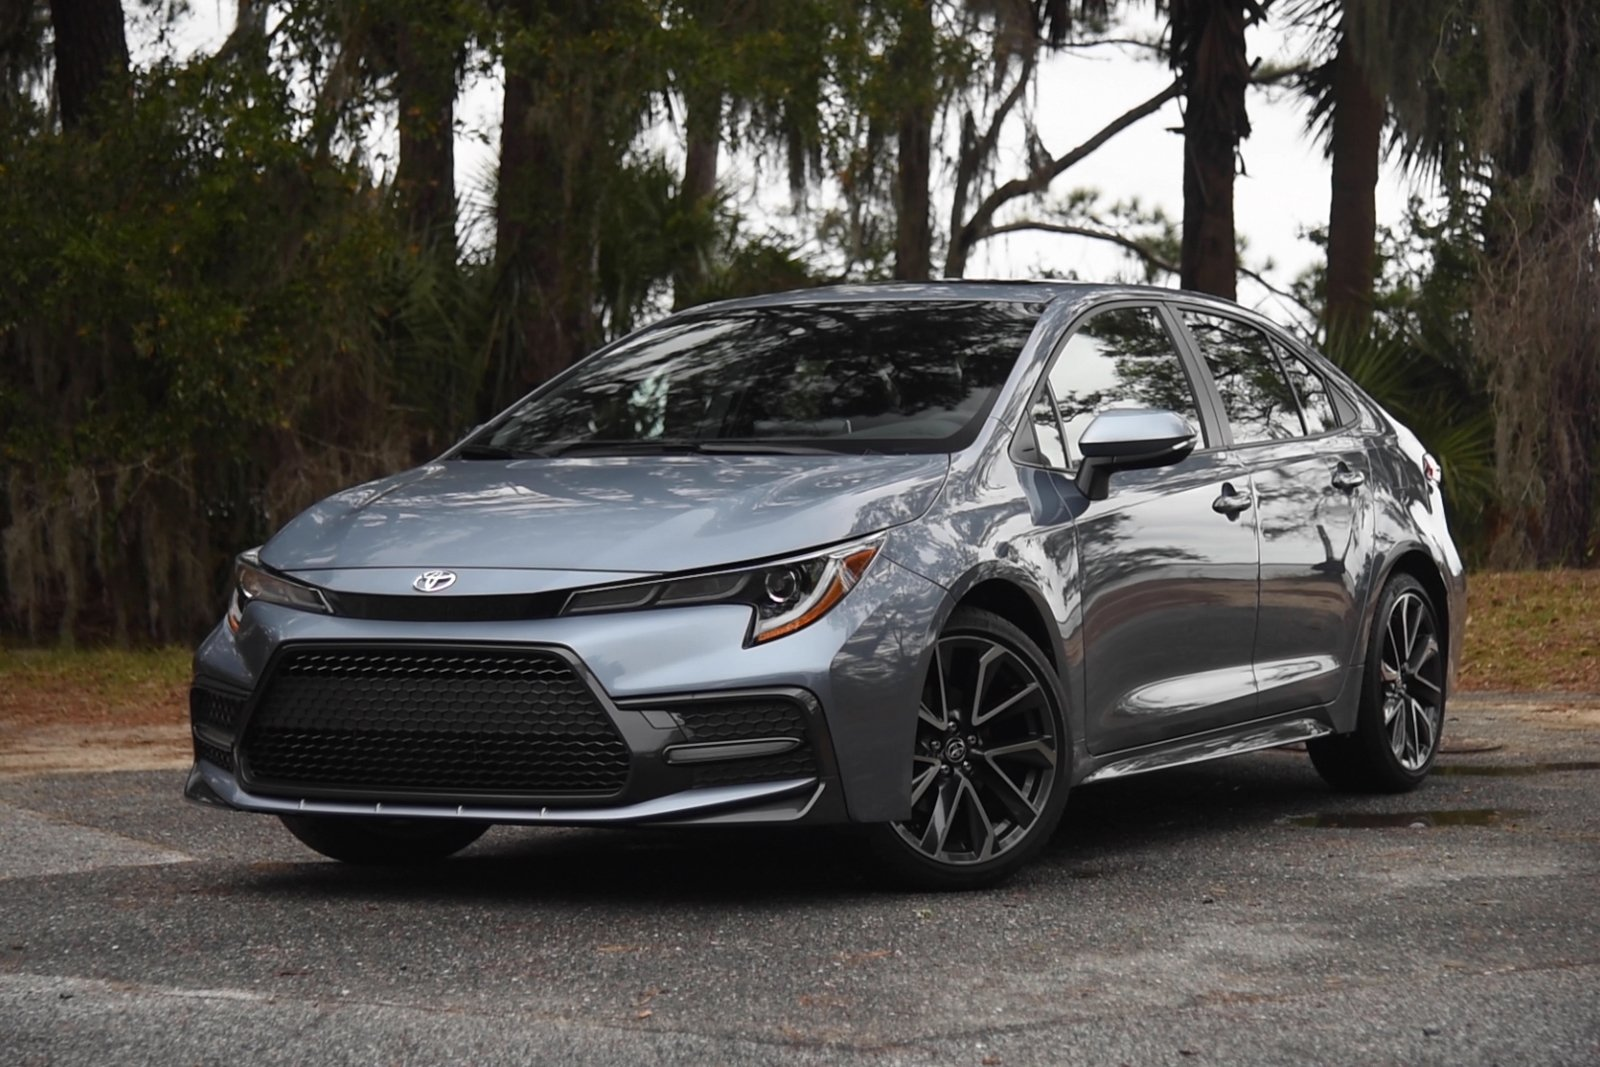 62 Best Review Toyota Corolla 2020 Specs and Review with Toyota Corolla 2020